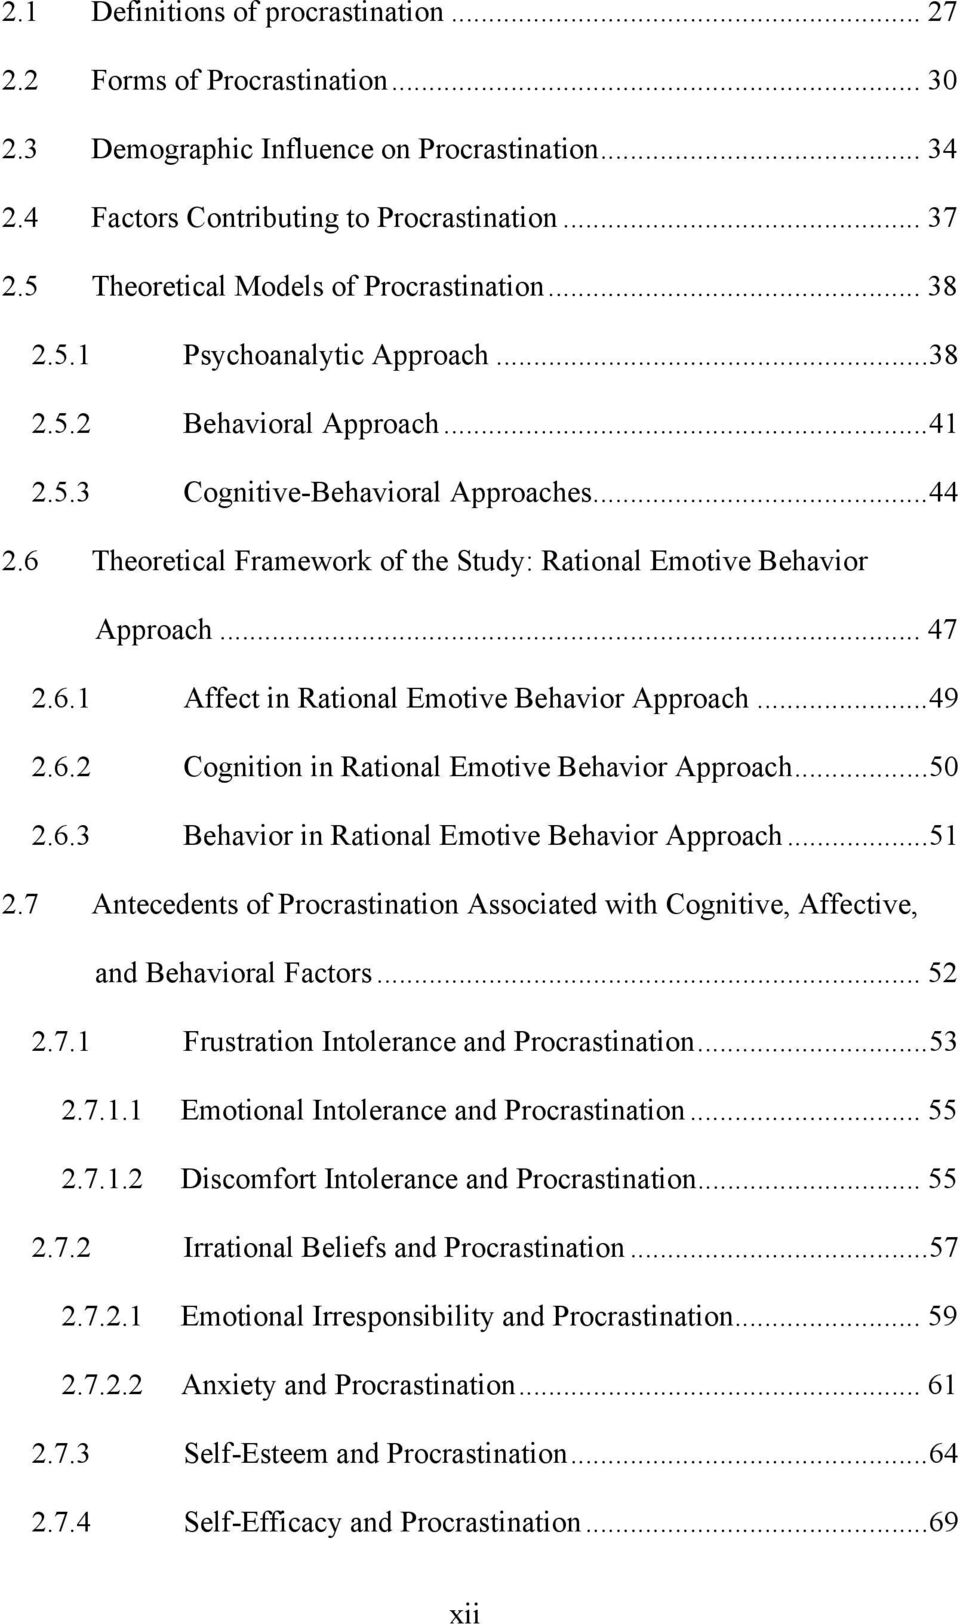 6 Theoretical Framework of the Study: Rational Emotive Behavior Approach... 47 2.6.1 Affect in Rational Emotive Behavior Approach... 49 2.6.2 Cognition in Rational Emotive Behavior Approach... 50 2.6.3 Behavior in Rational Emotive Behavior Approach.